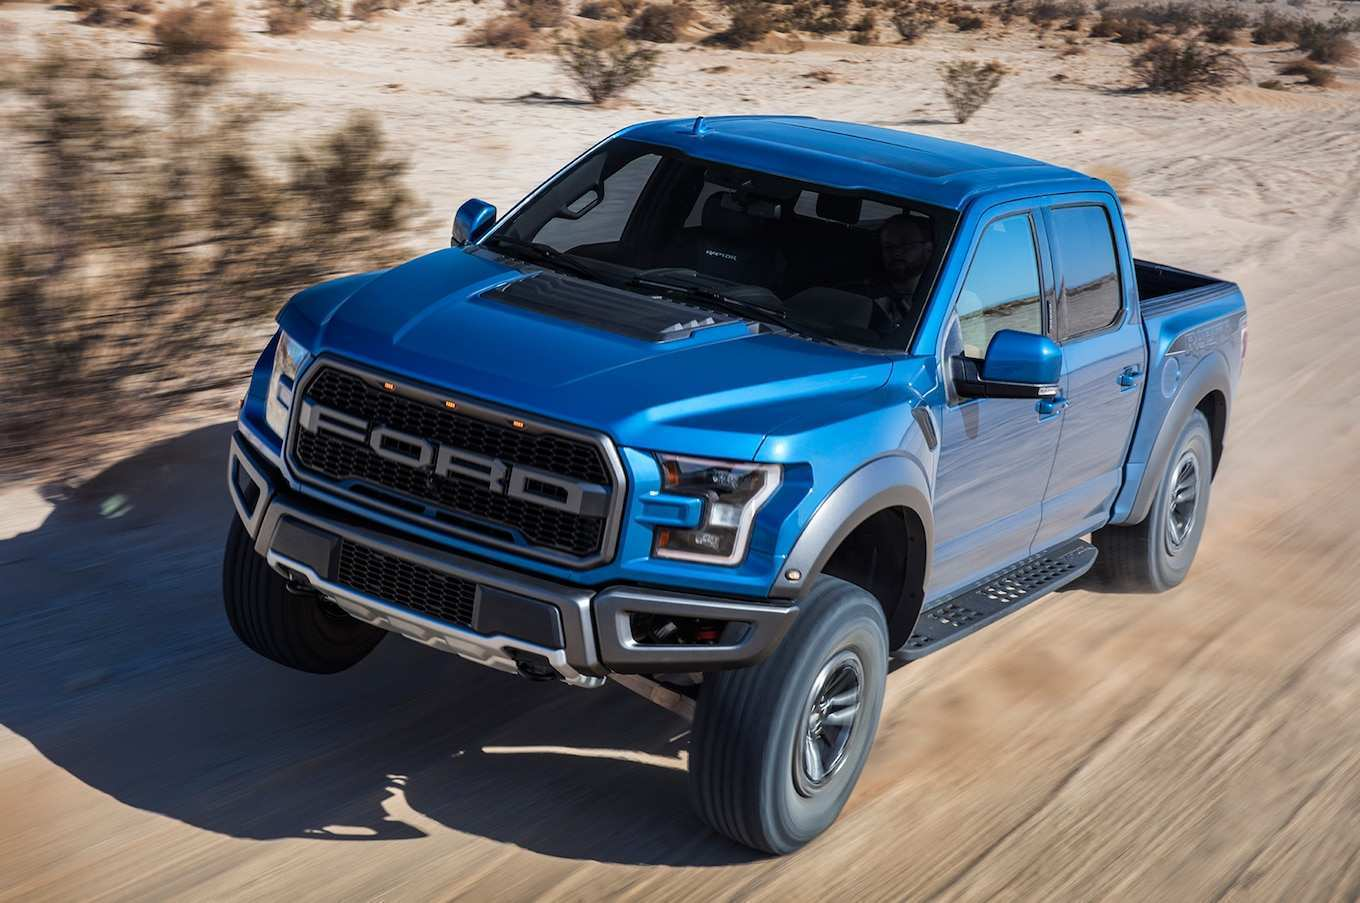 17 Gallery of 2019 Ford Raptor 7 0L Release Date with 2019 Ford Raptor 7 0L